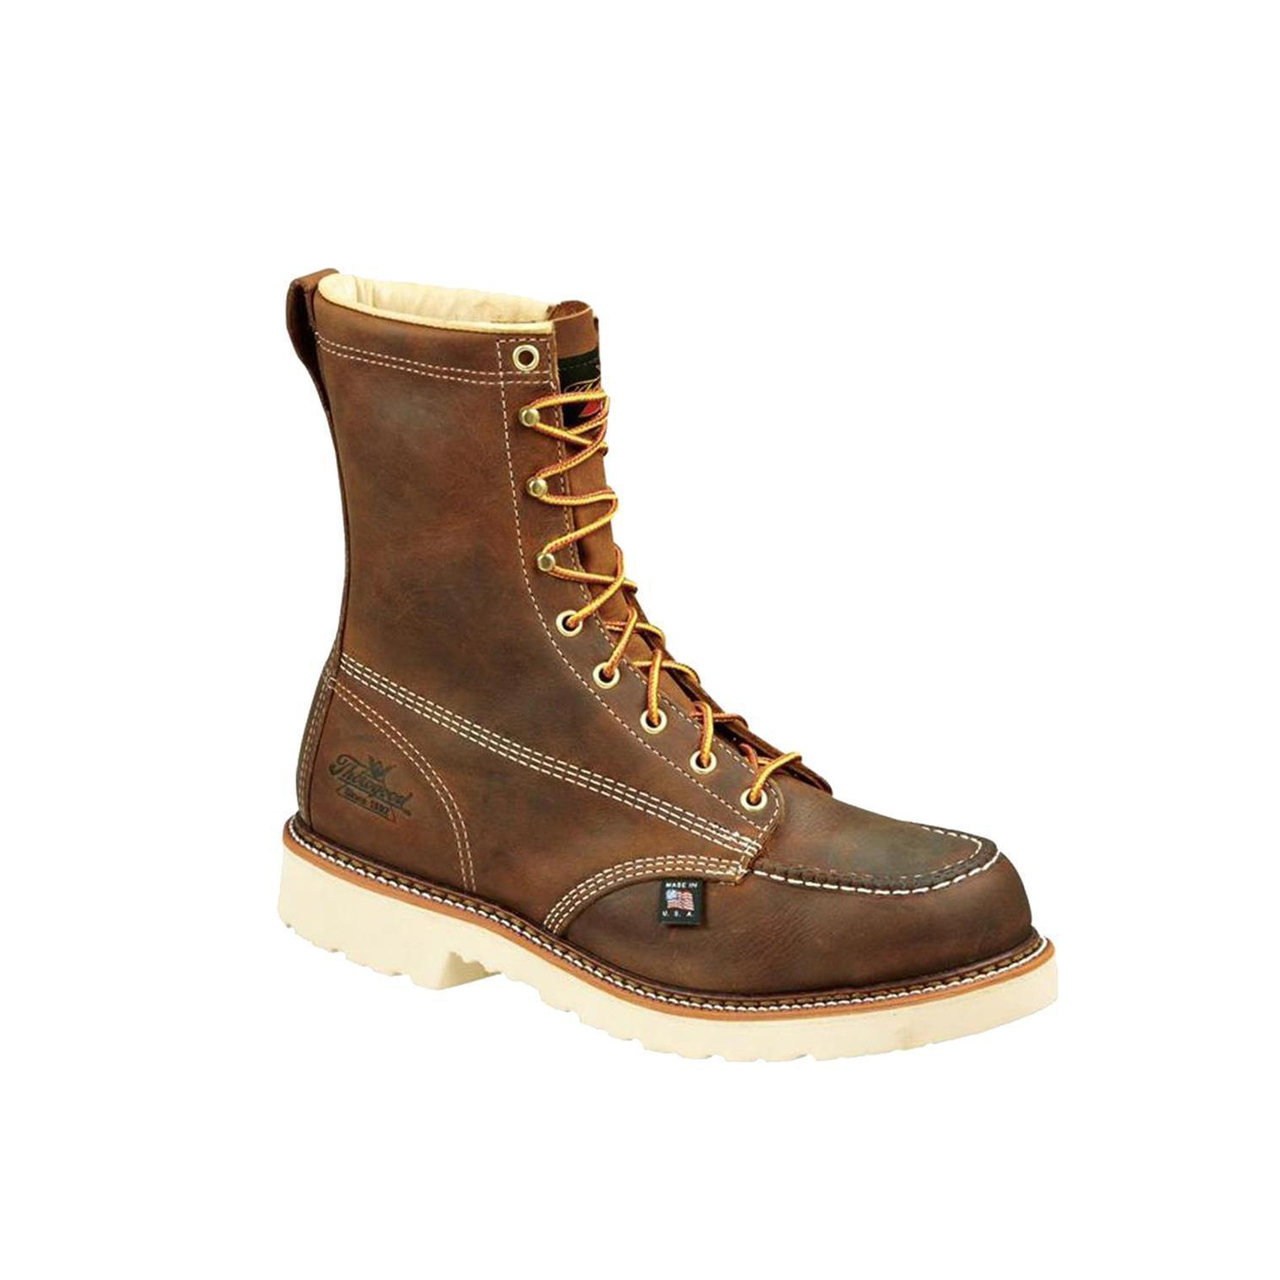 Thorogood 8″ American Heritage Moc Toe Bronze Brown Work Boots